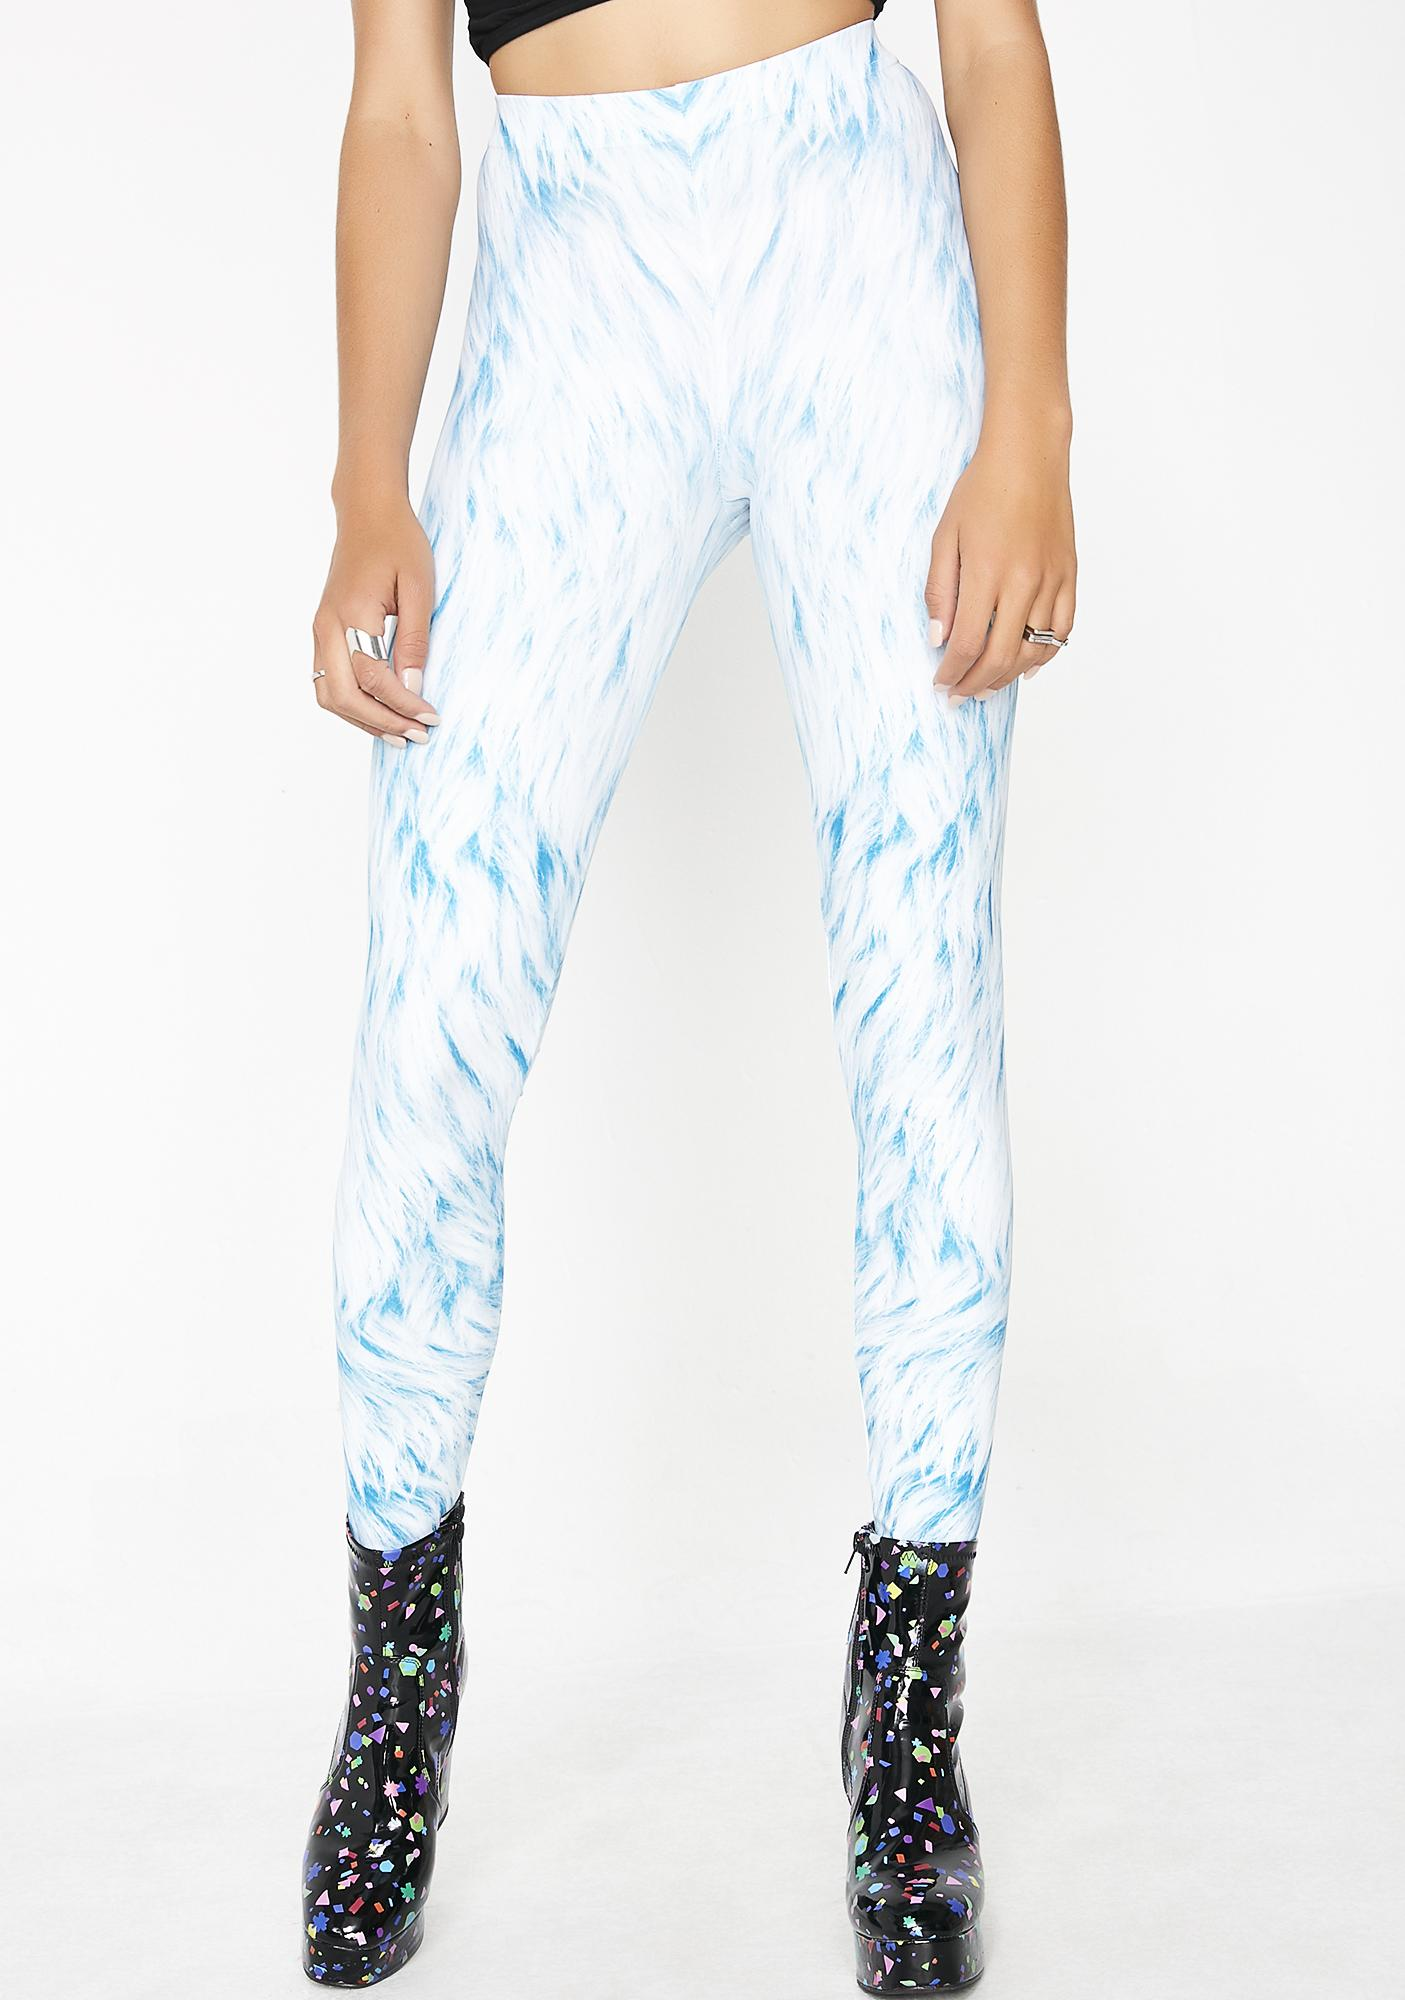 Badinka Bluefur Leggings